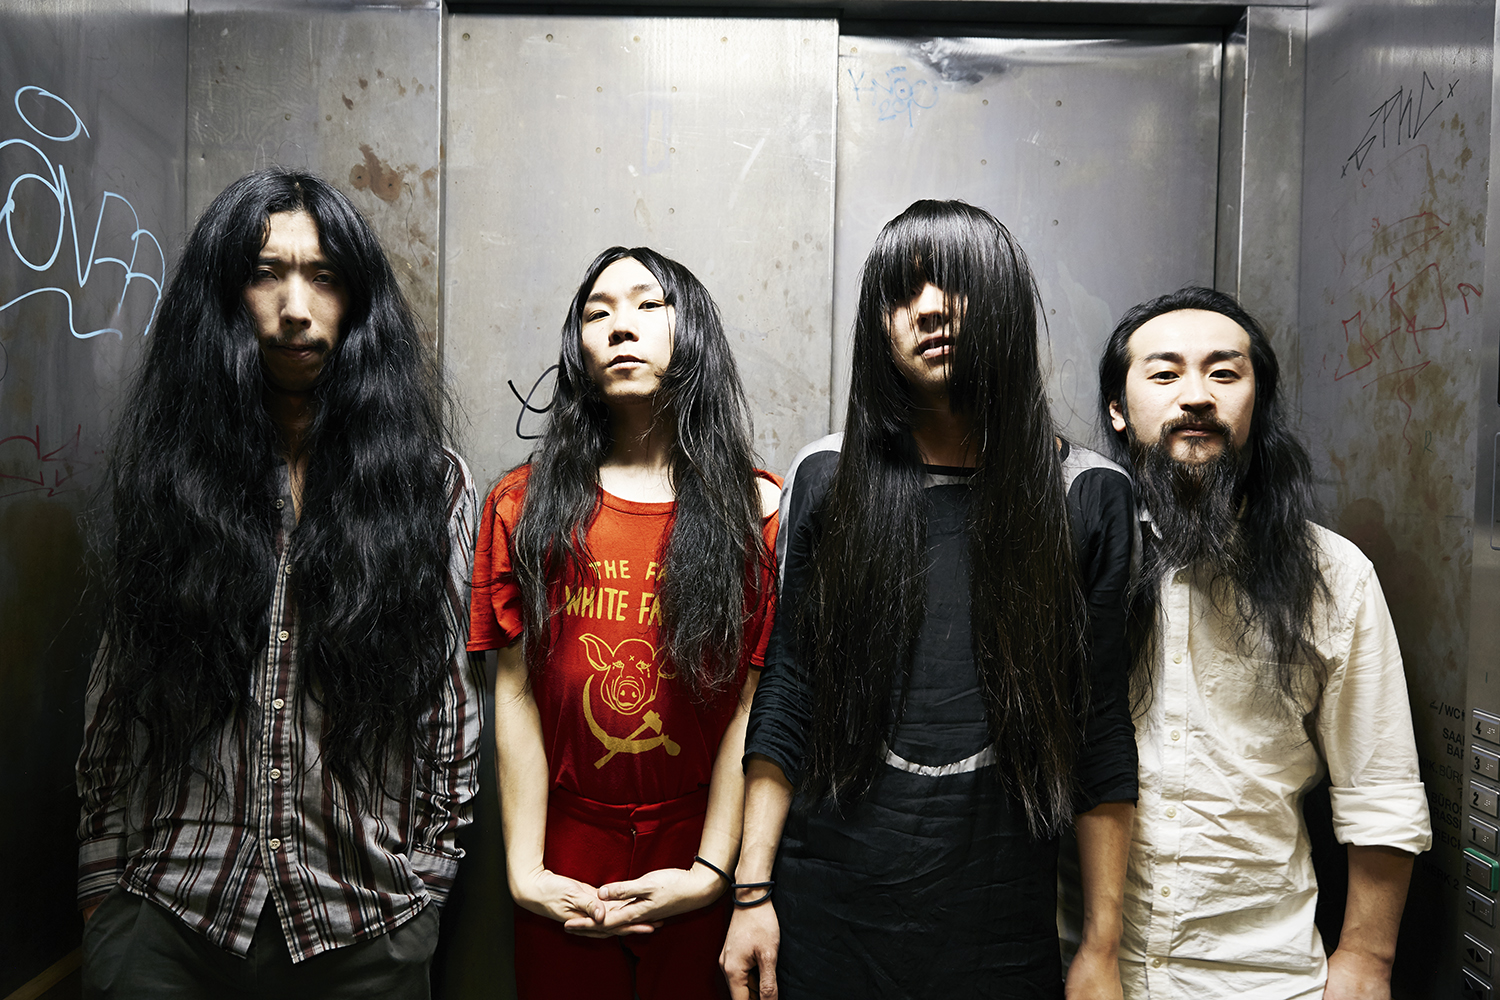 Bo Ningen / Zurich, Switzerland.